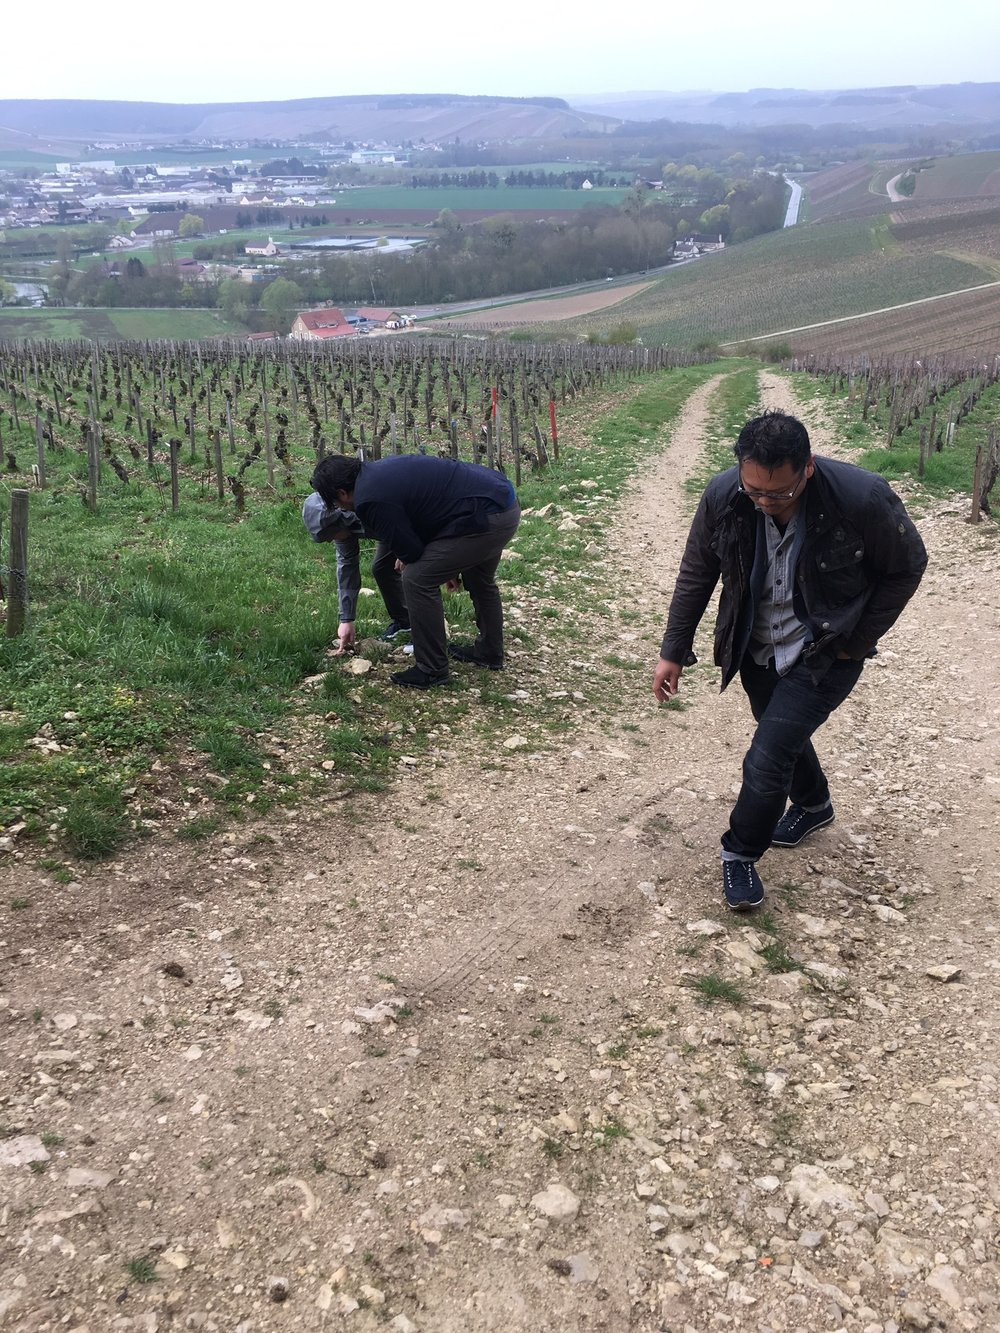 Searching for fossils in the Chablis Grand Cru vineyard